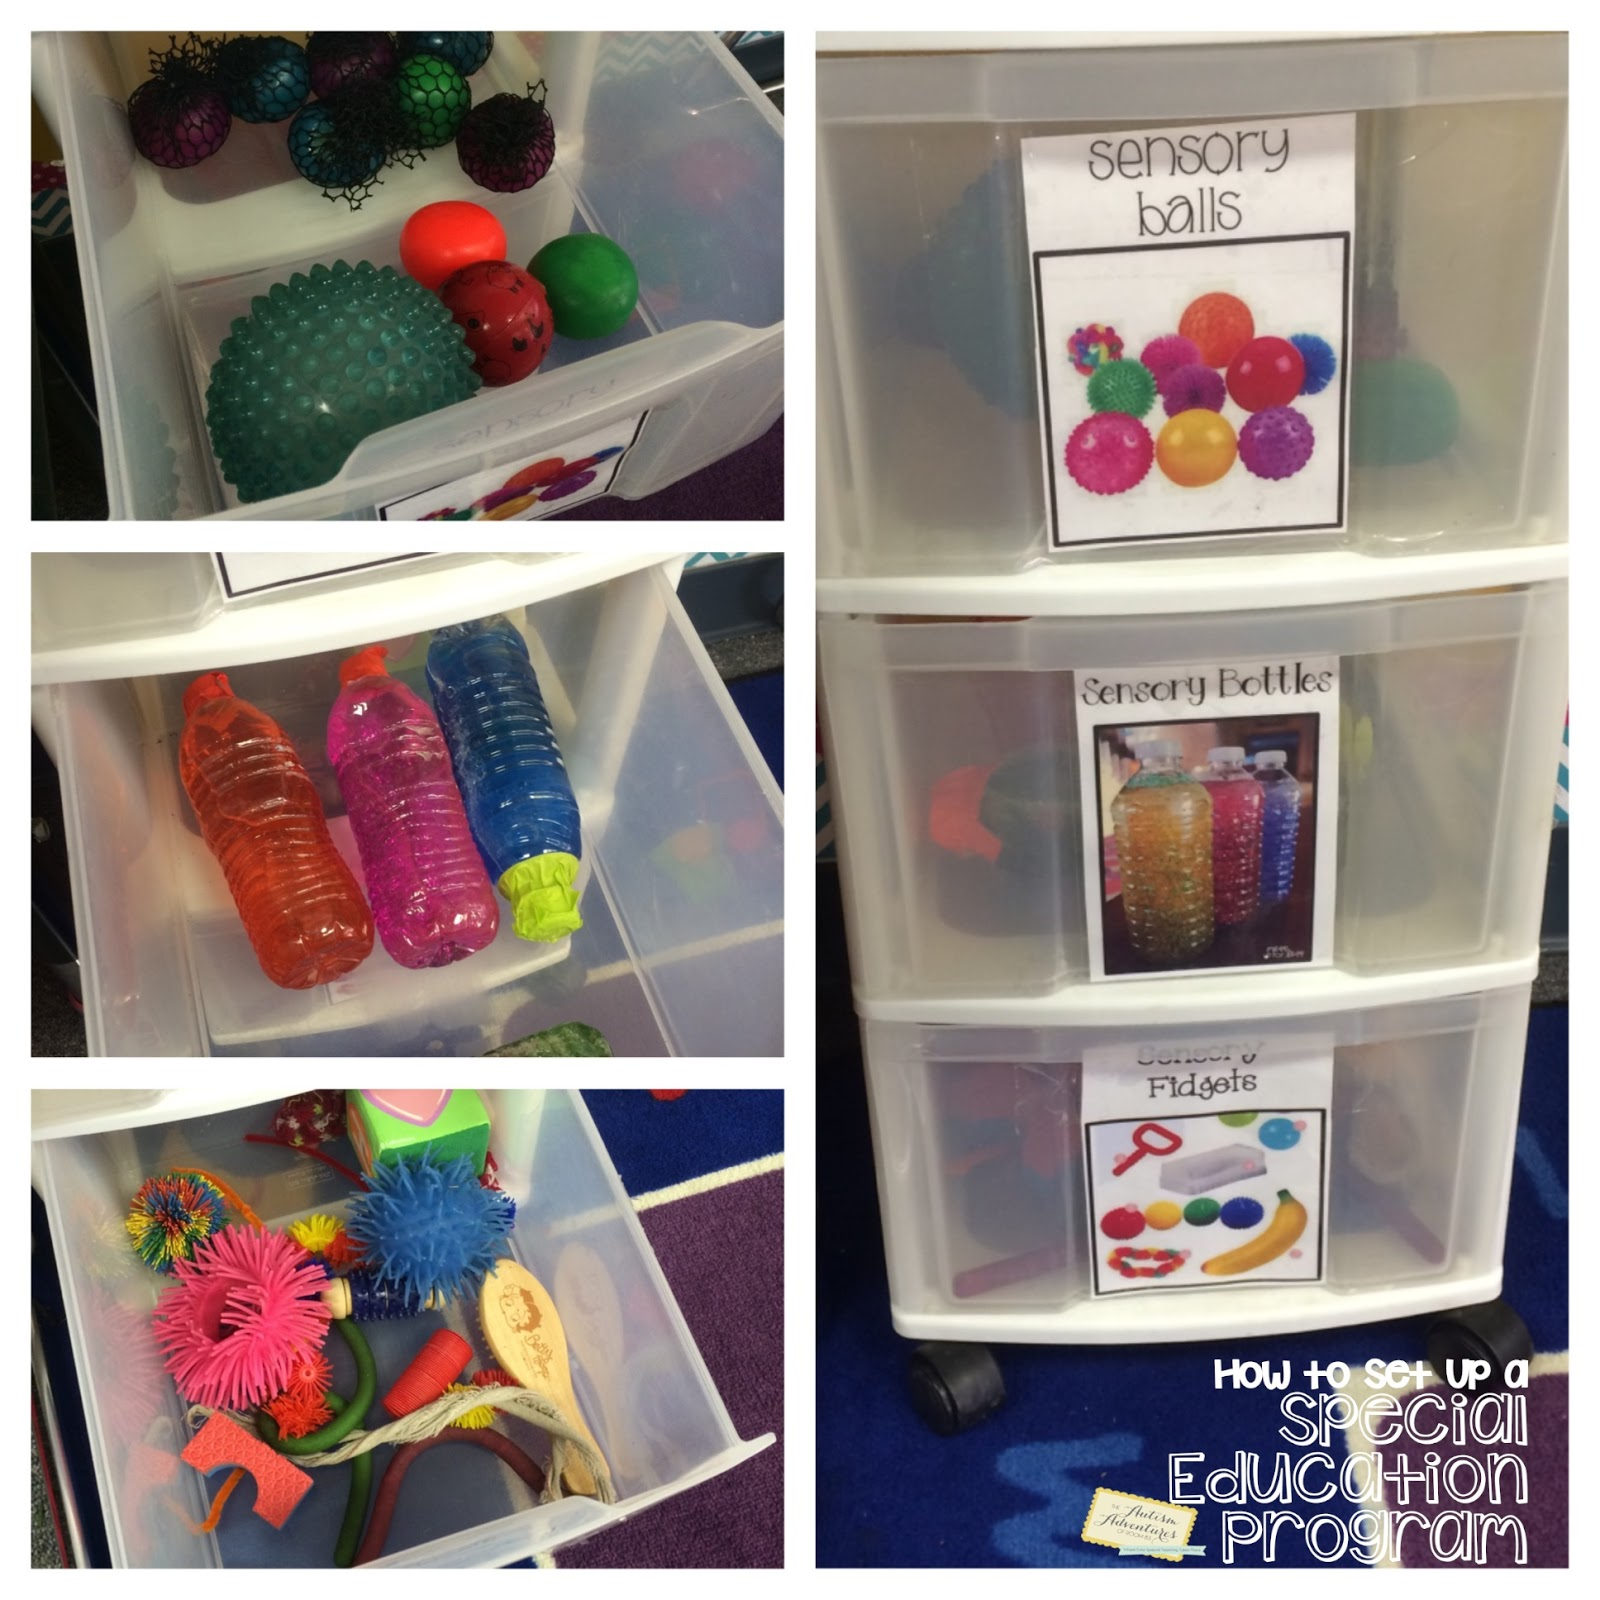 Classroom Organization Ideas For Special Education : Quot how to set up a special education program organizing